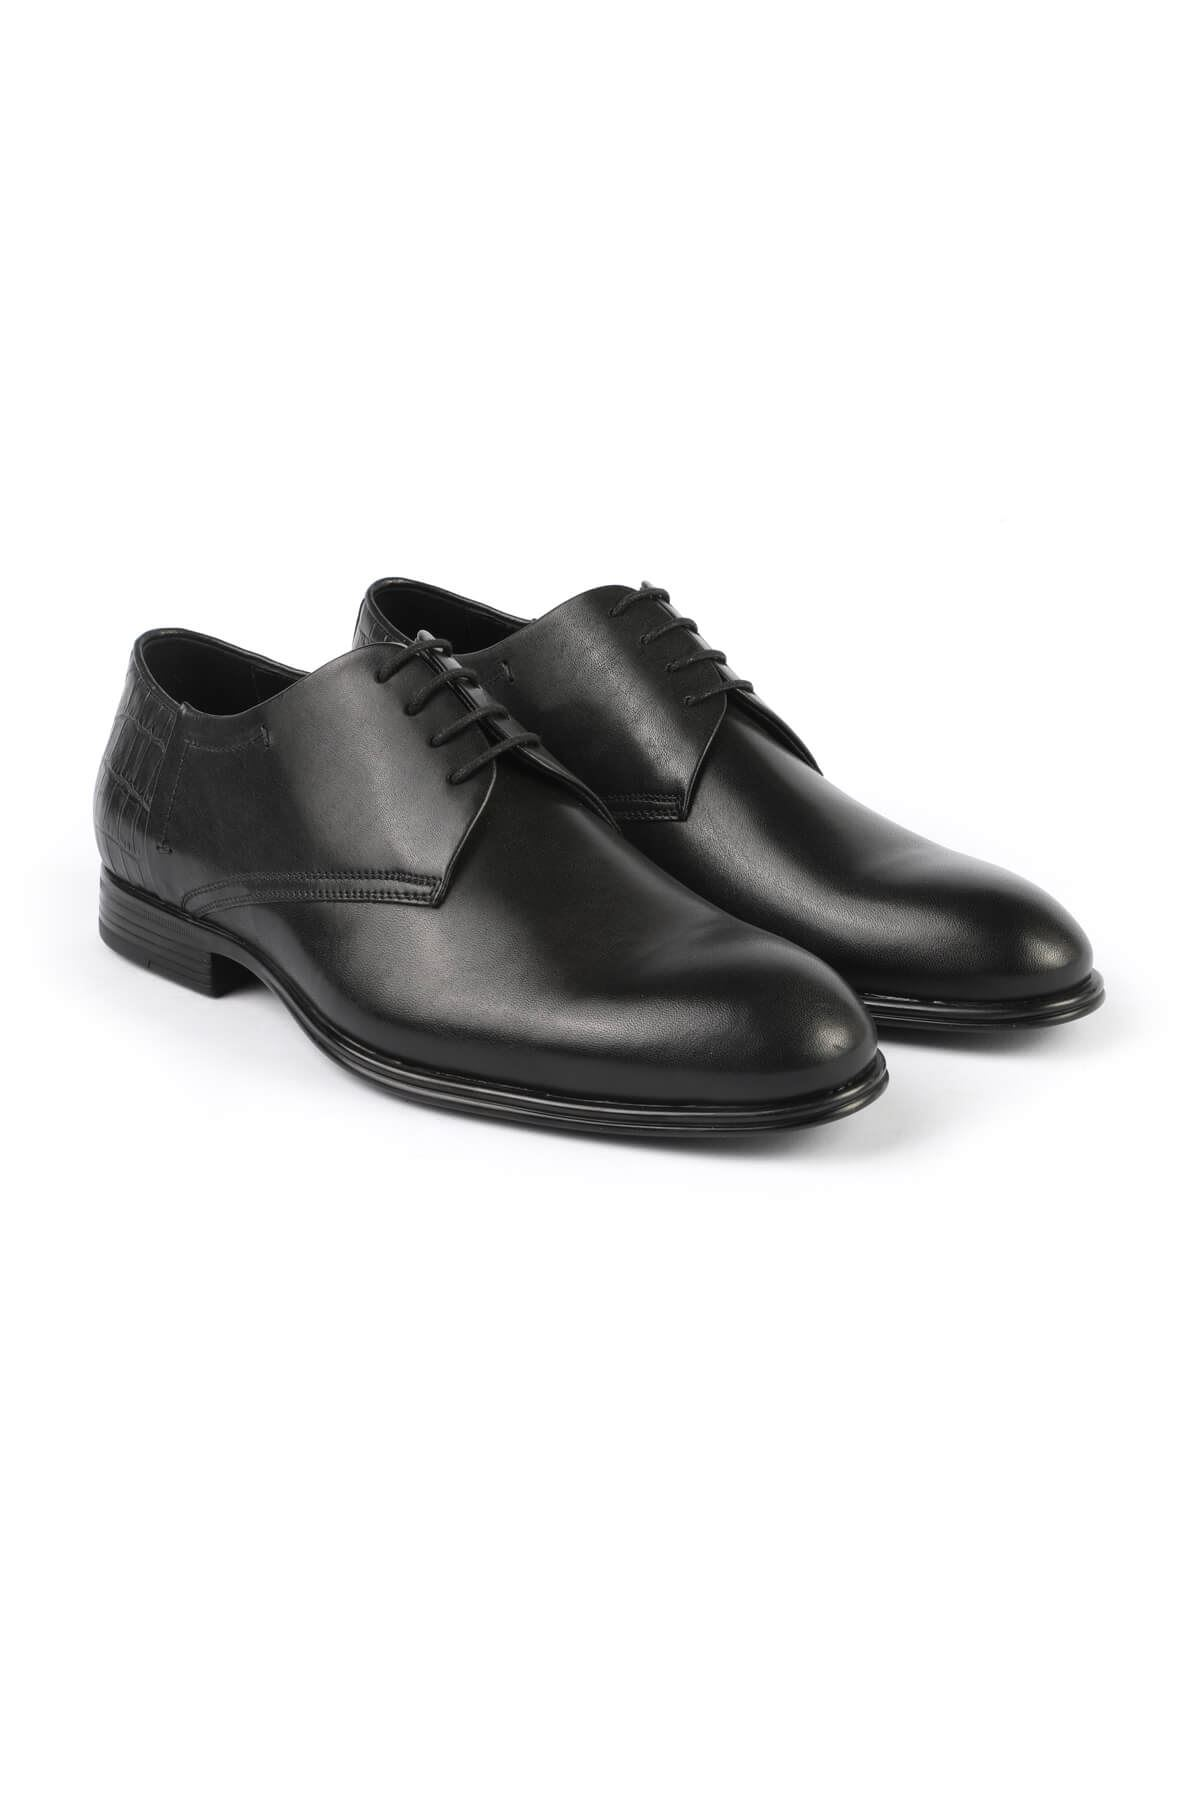 Libero 3111 Black Classic Shoes